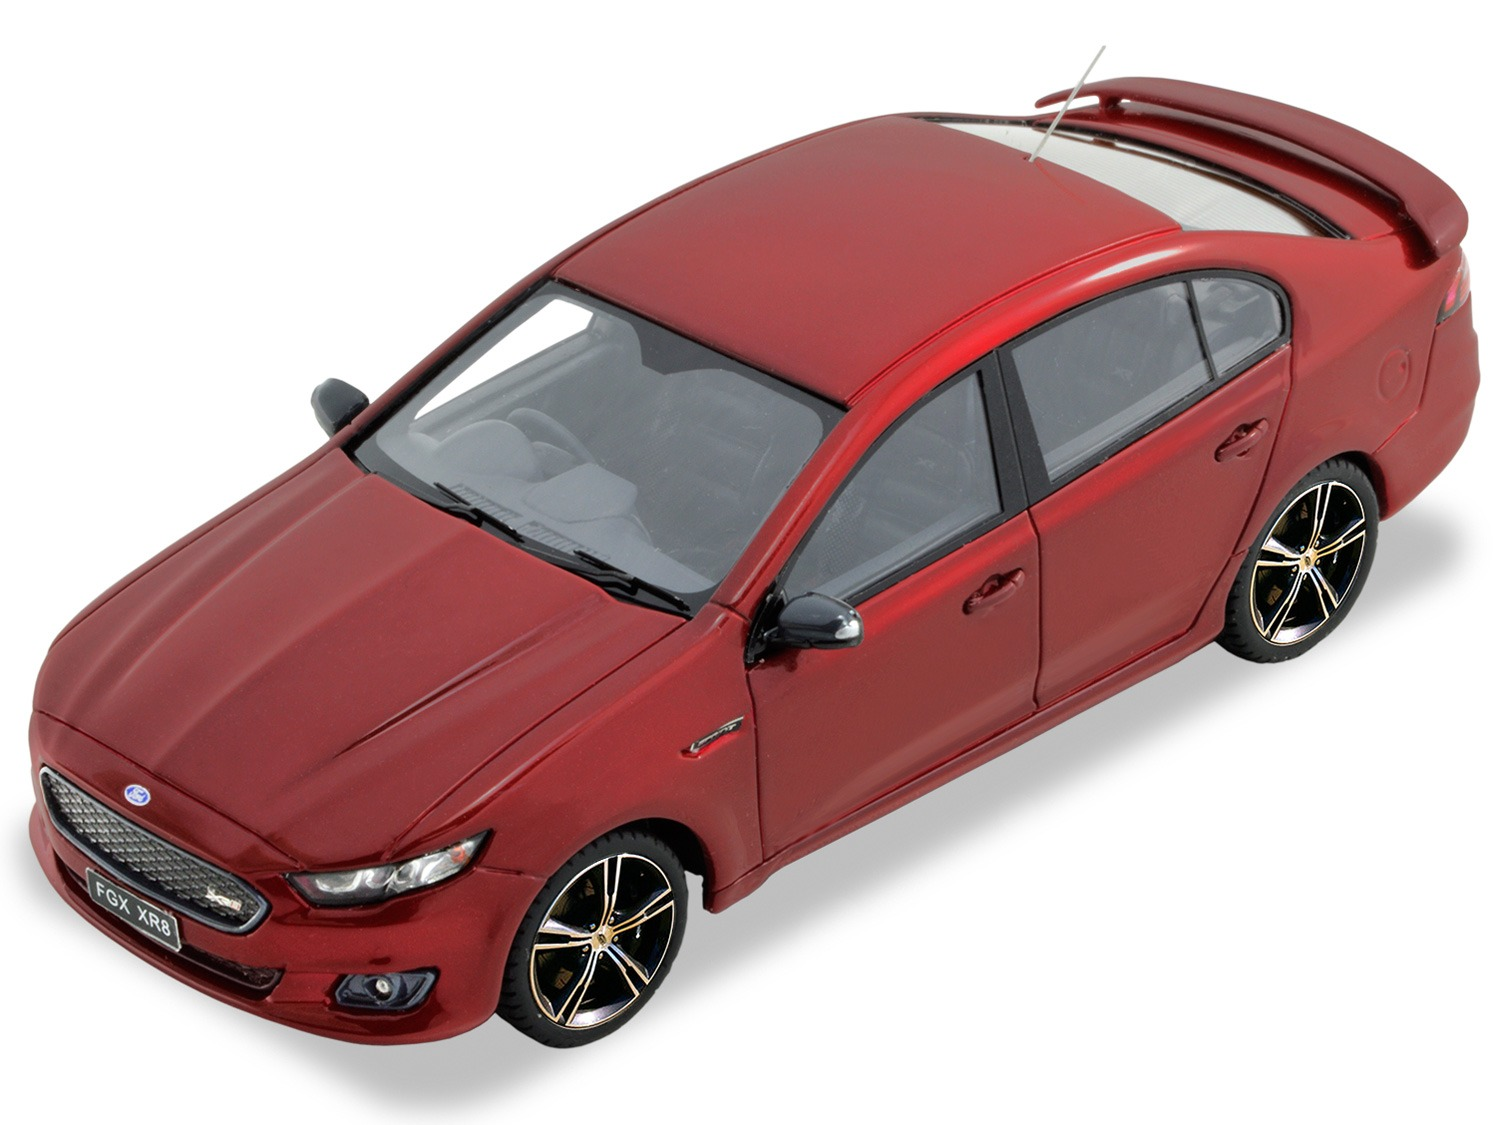 Ford FGX XR8 – Emperor (Red)